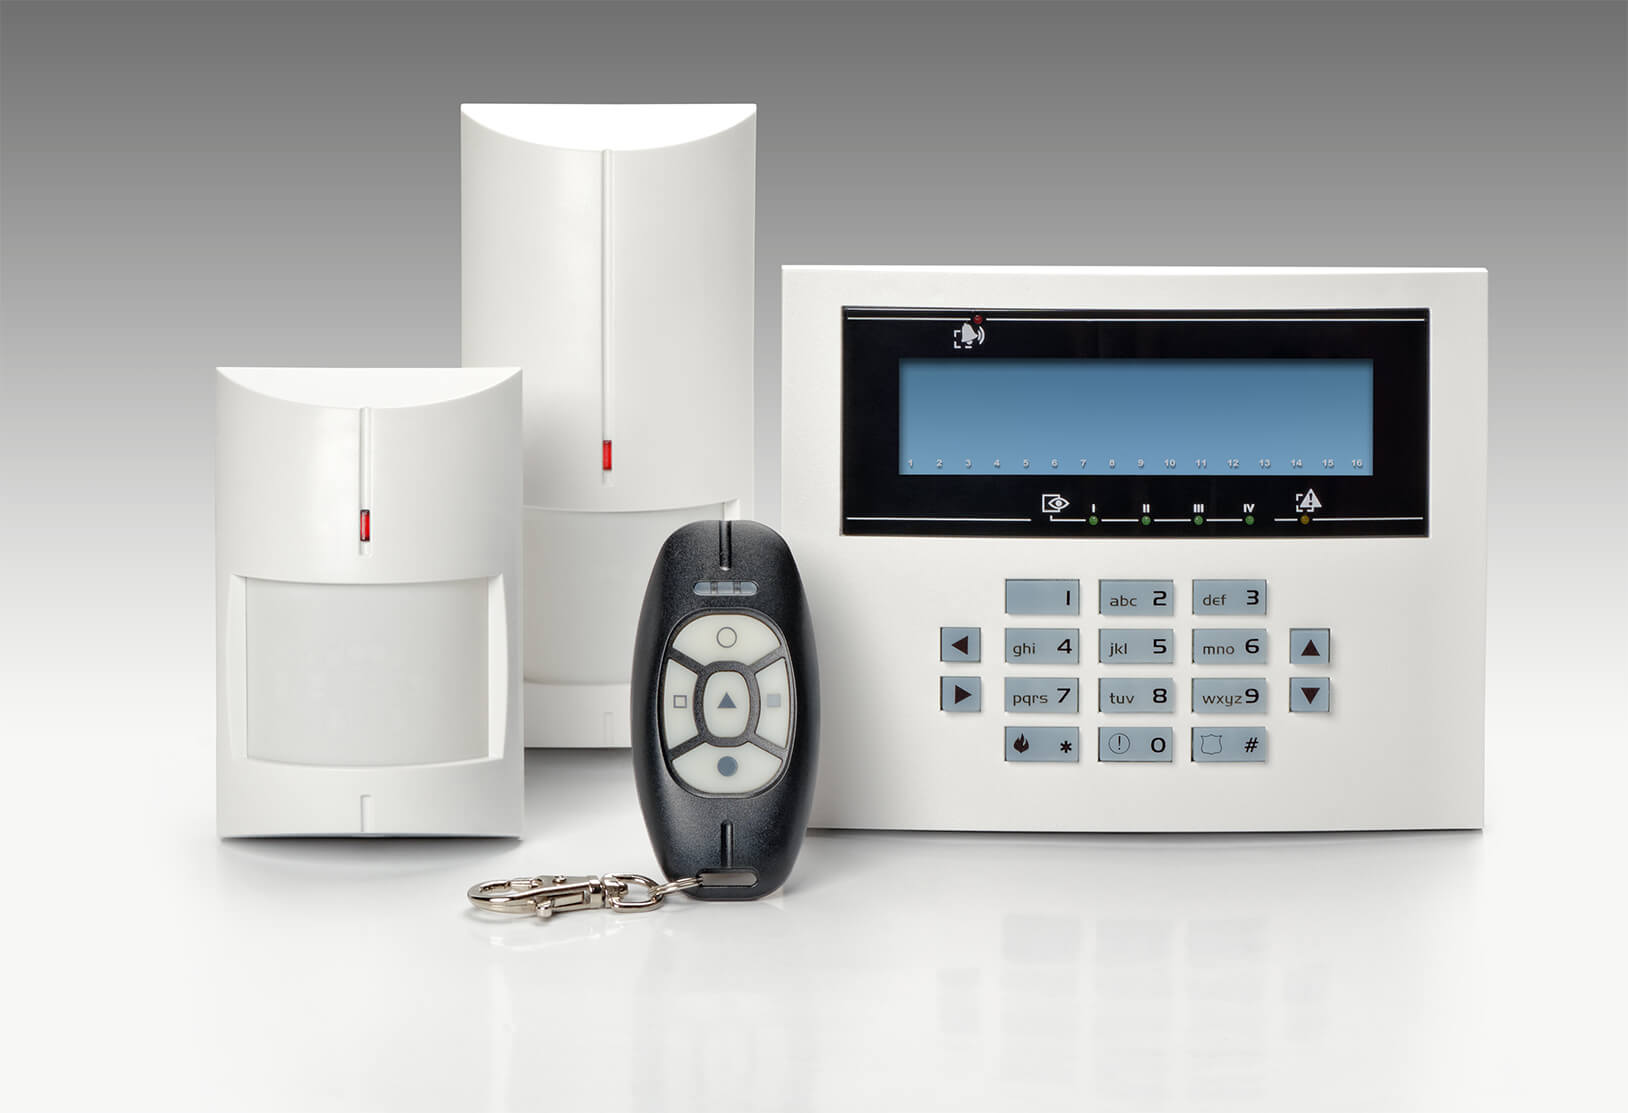 Business & Residential NACOSS Approved Burglar Alarms In Forest Gate E7 - Local Forest Gate E7 security company.Call 02078872244 - Dedicated to Safety & Security. Companies, shops and homes ..